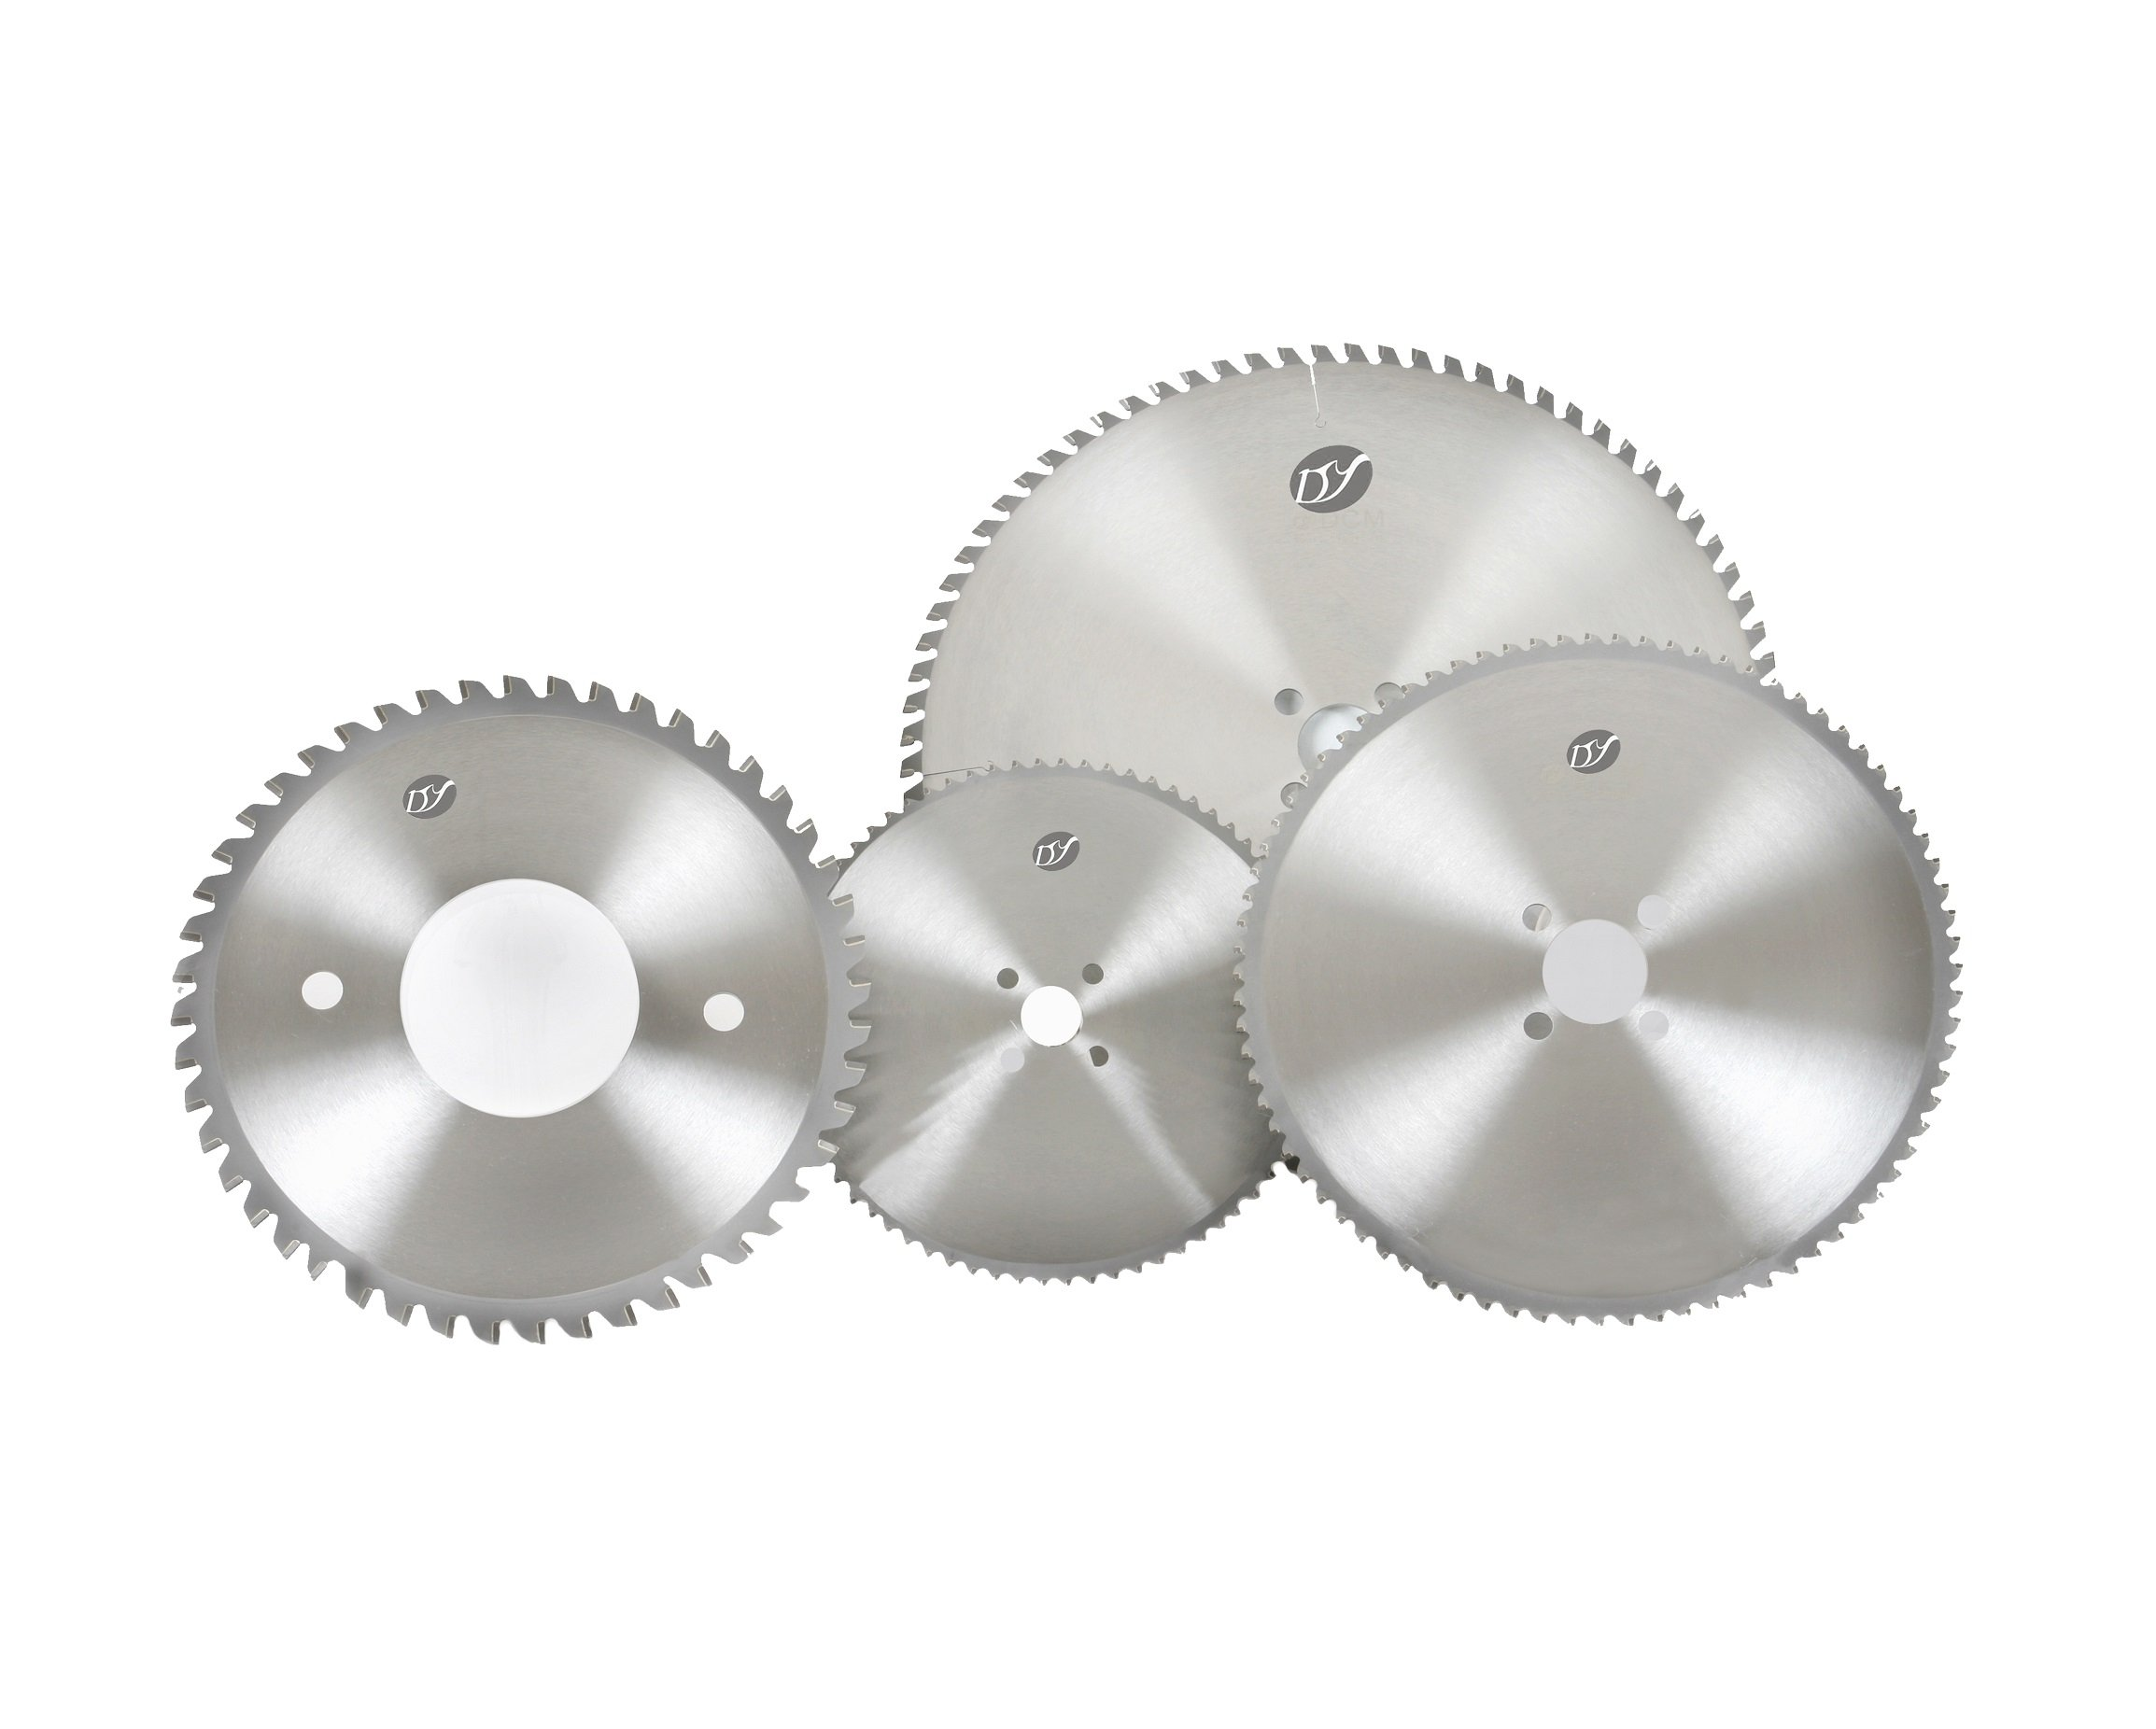 apollo saws saw blades - HD 2309×1852